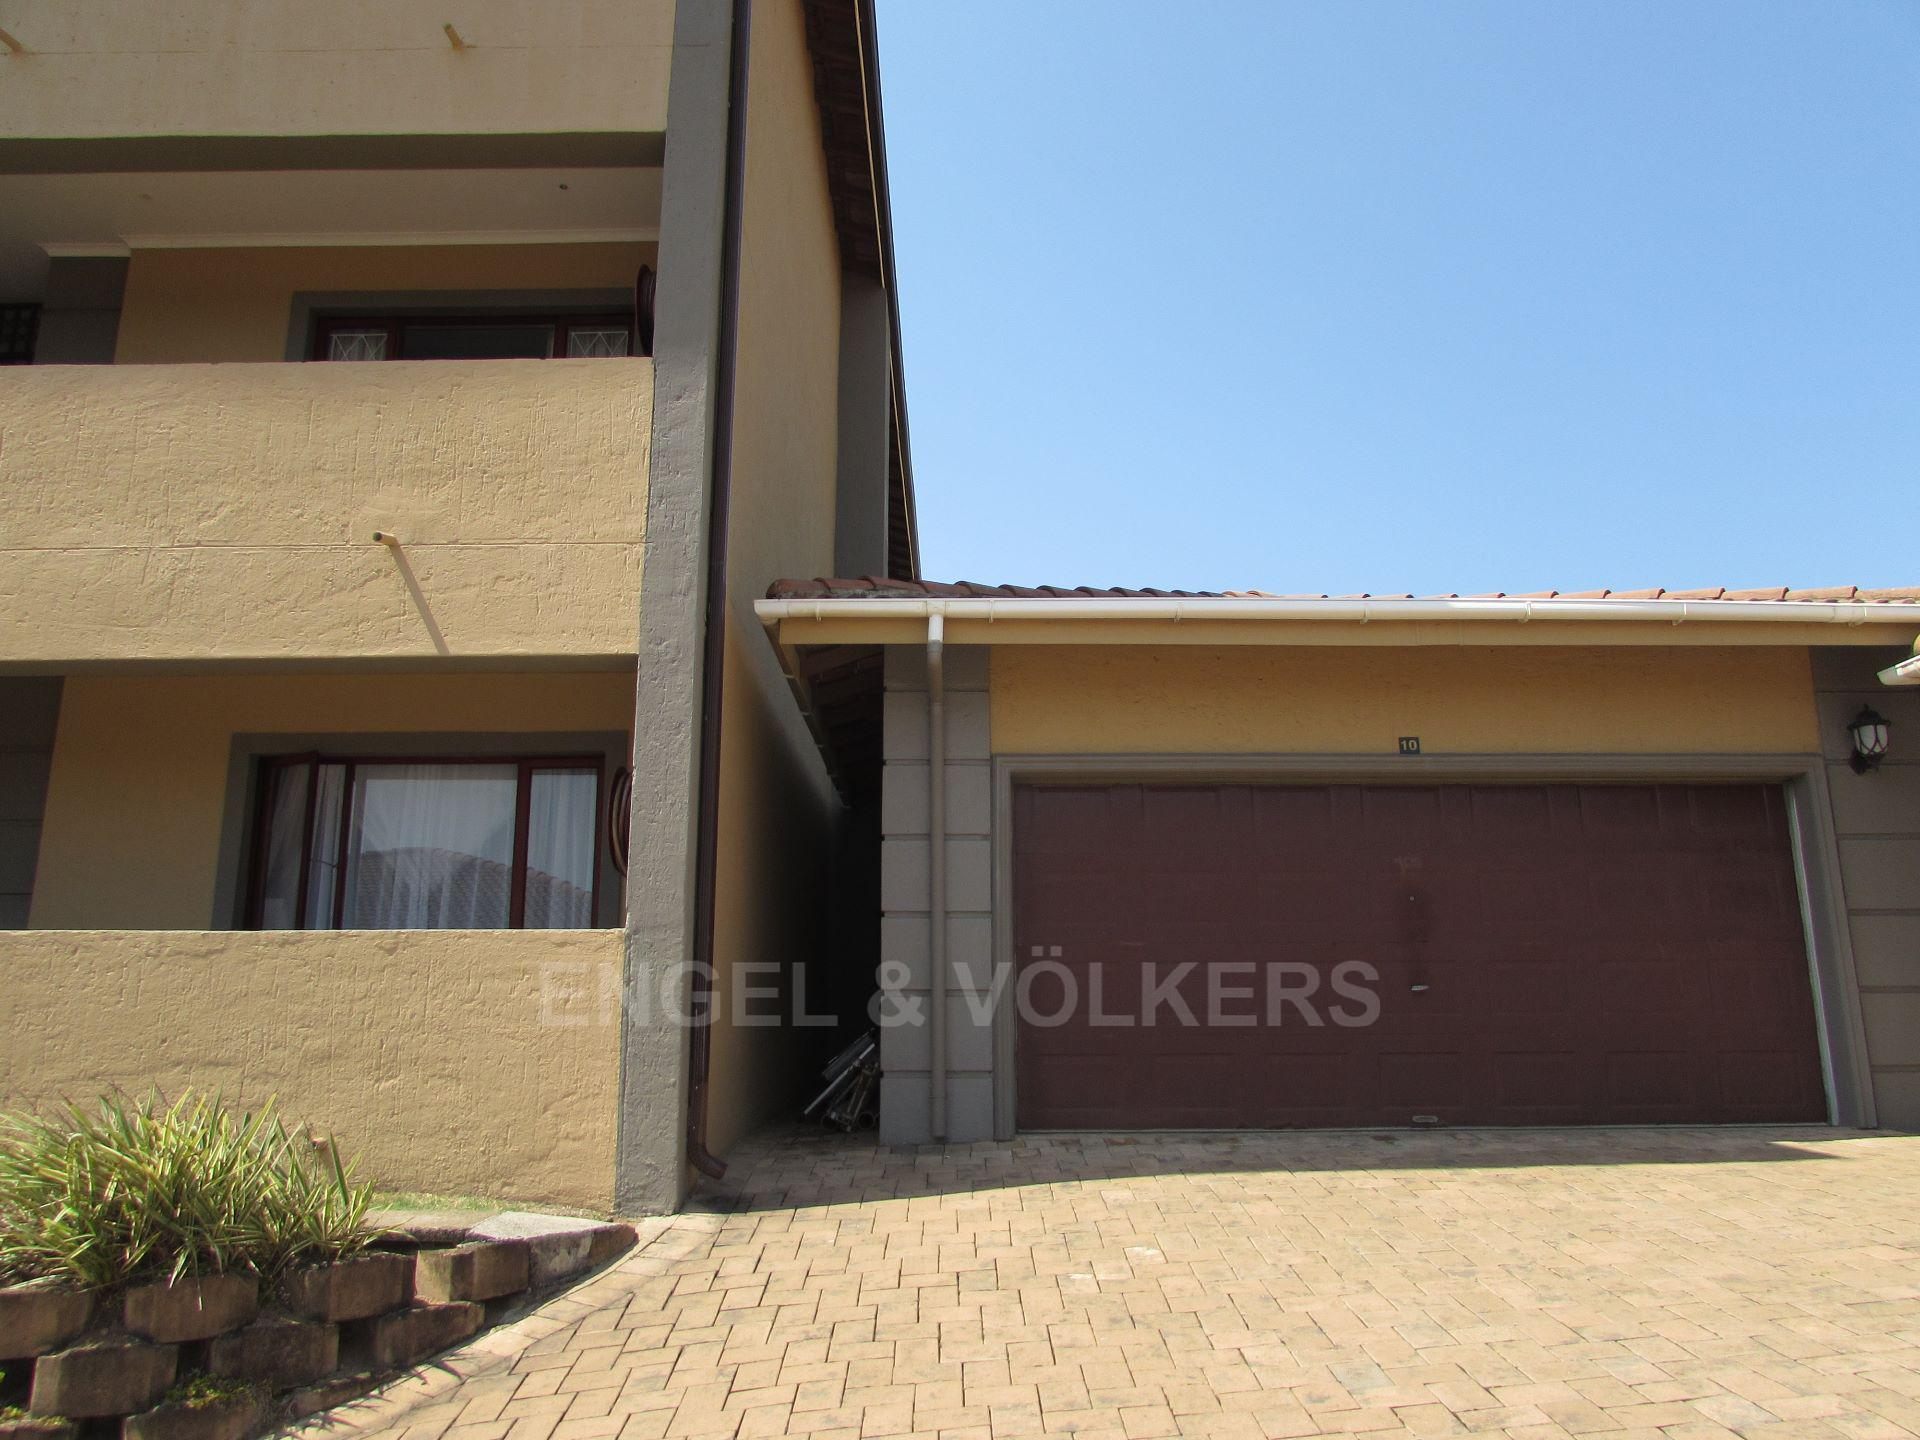 Apartment in Shelly Beach - 010 - Double lock-up garage.JPG